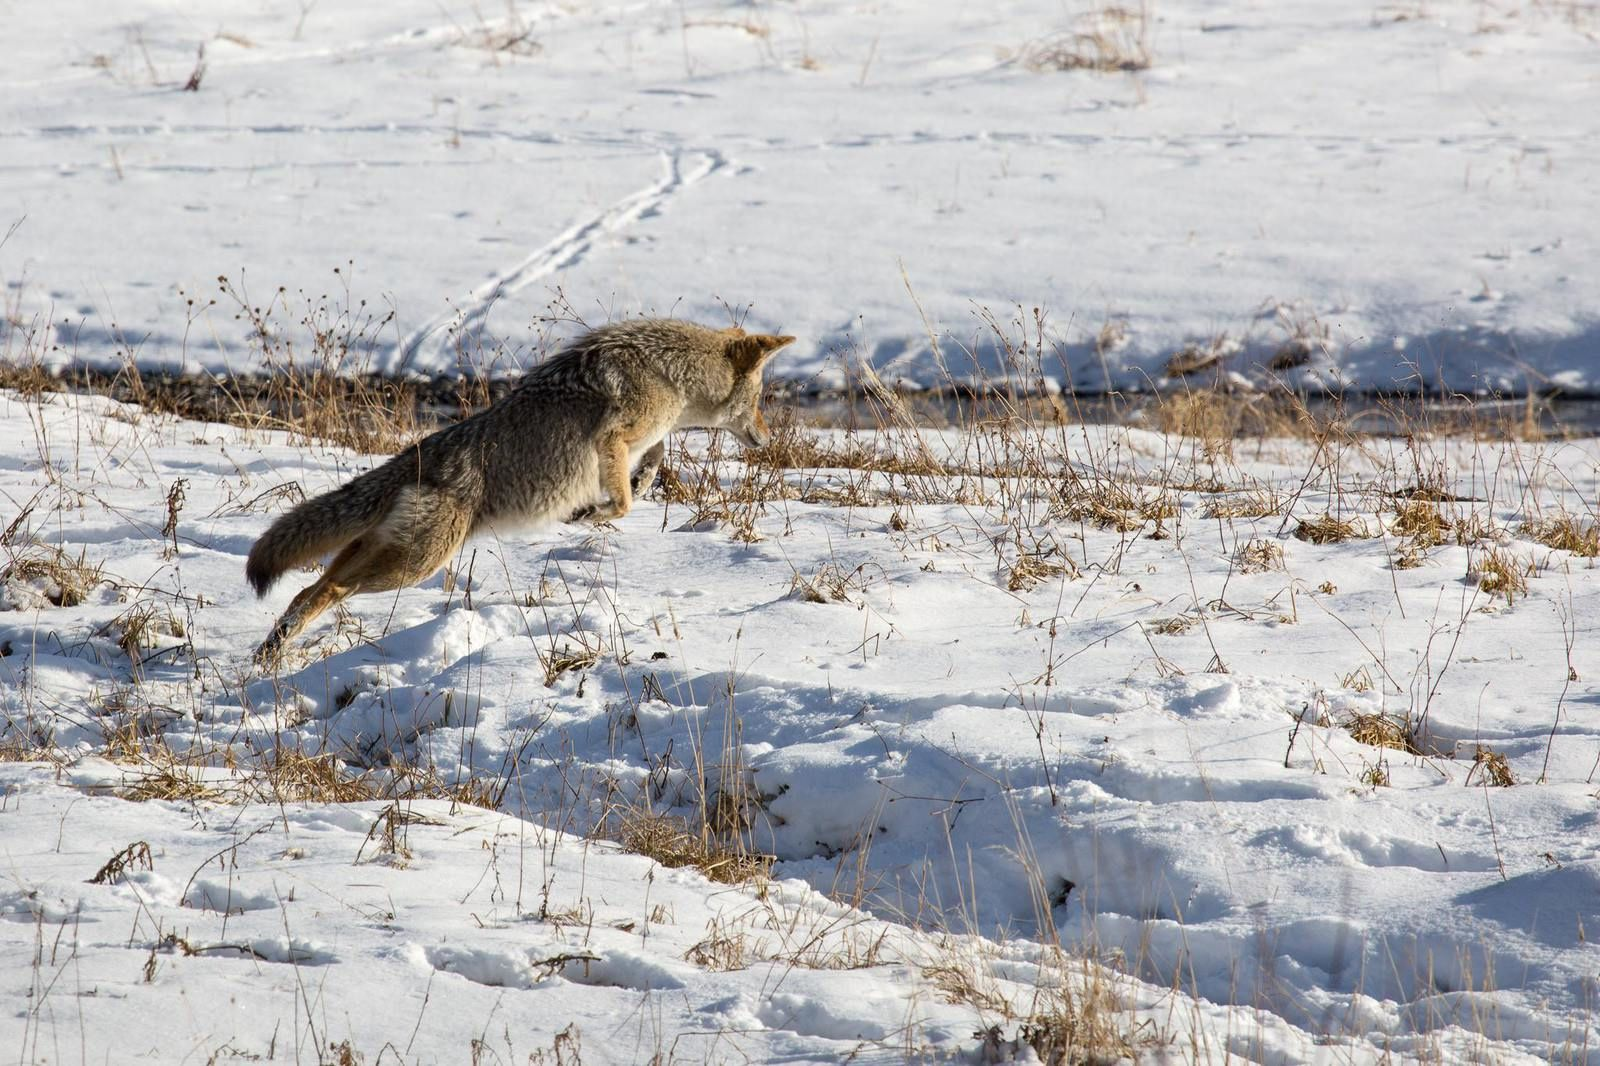 Coyote hunting in Round Prairie, near Pebble Creek Campground. - Photo Yellowstone forever / 11.2016